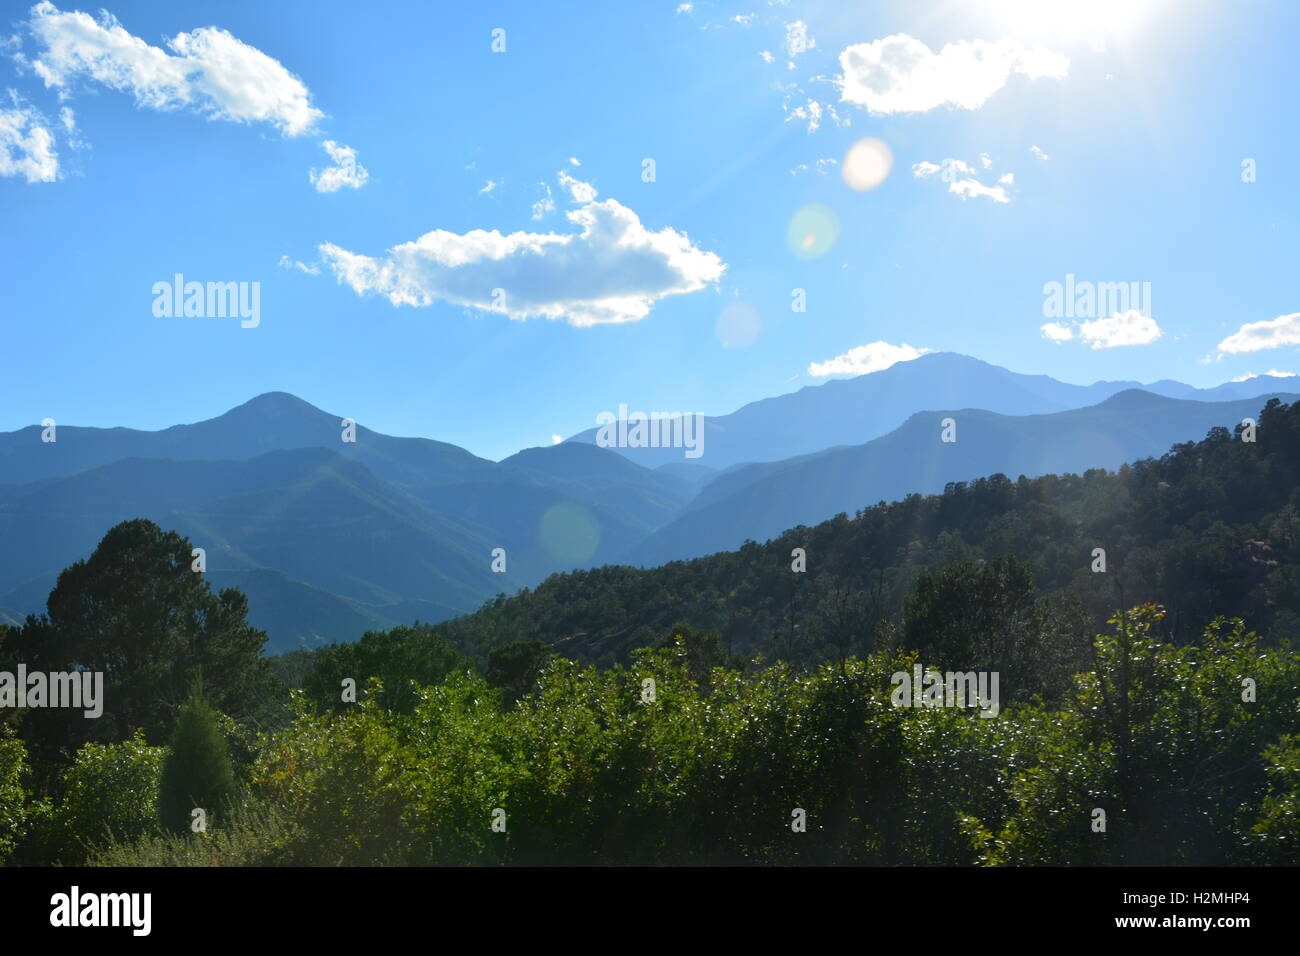 View of mountains near Garden of the Gods Park in Colorado Springs - Stock Image